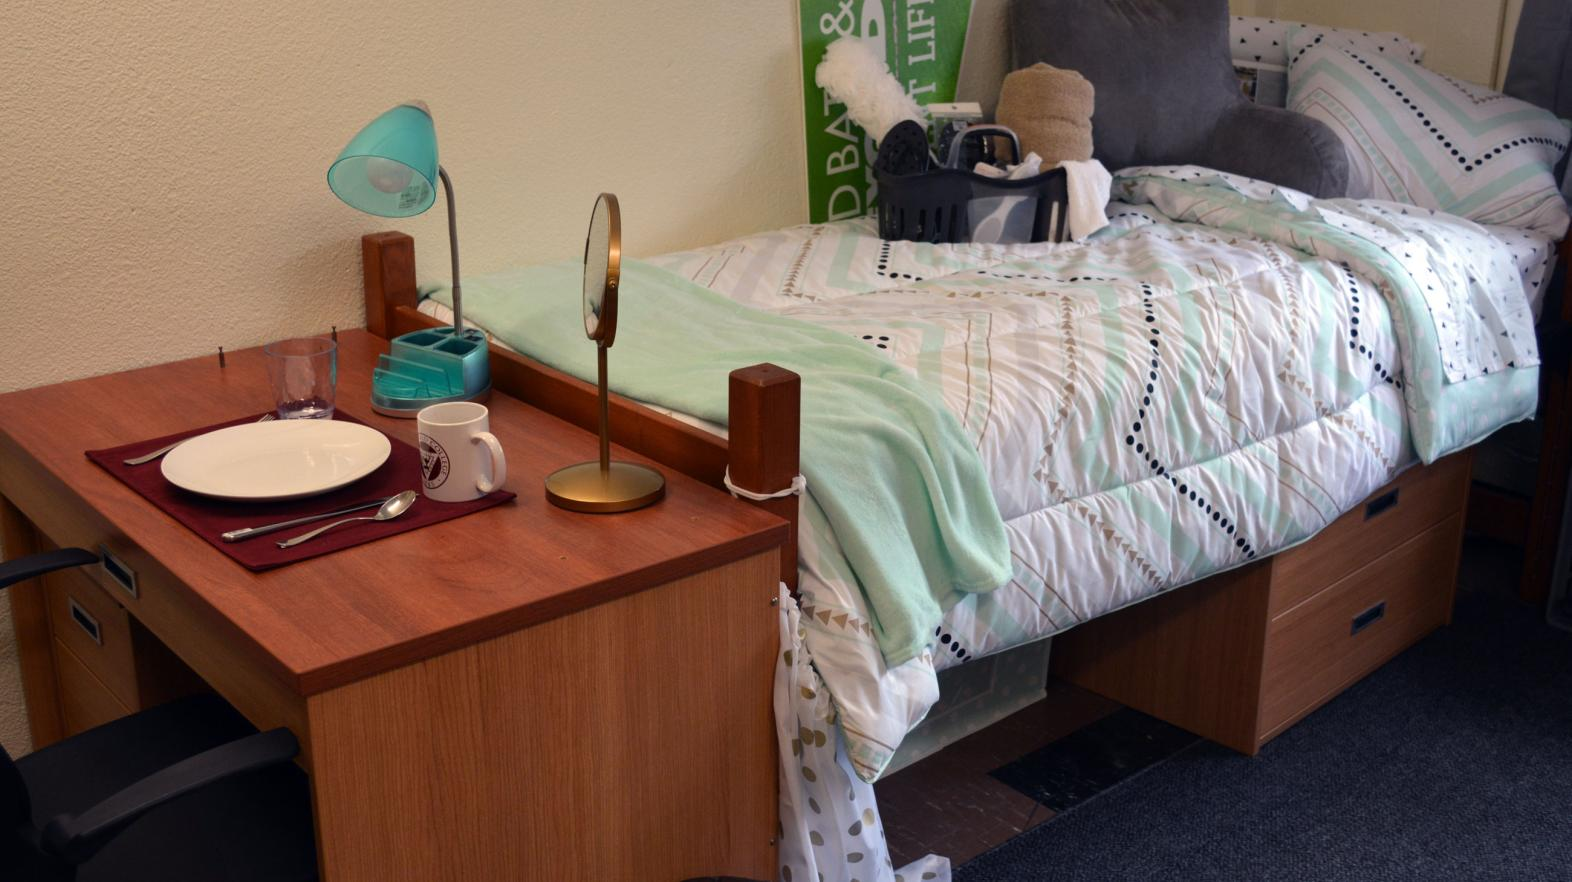 A desk with a plate on it and a bed in Massasoit Hall.